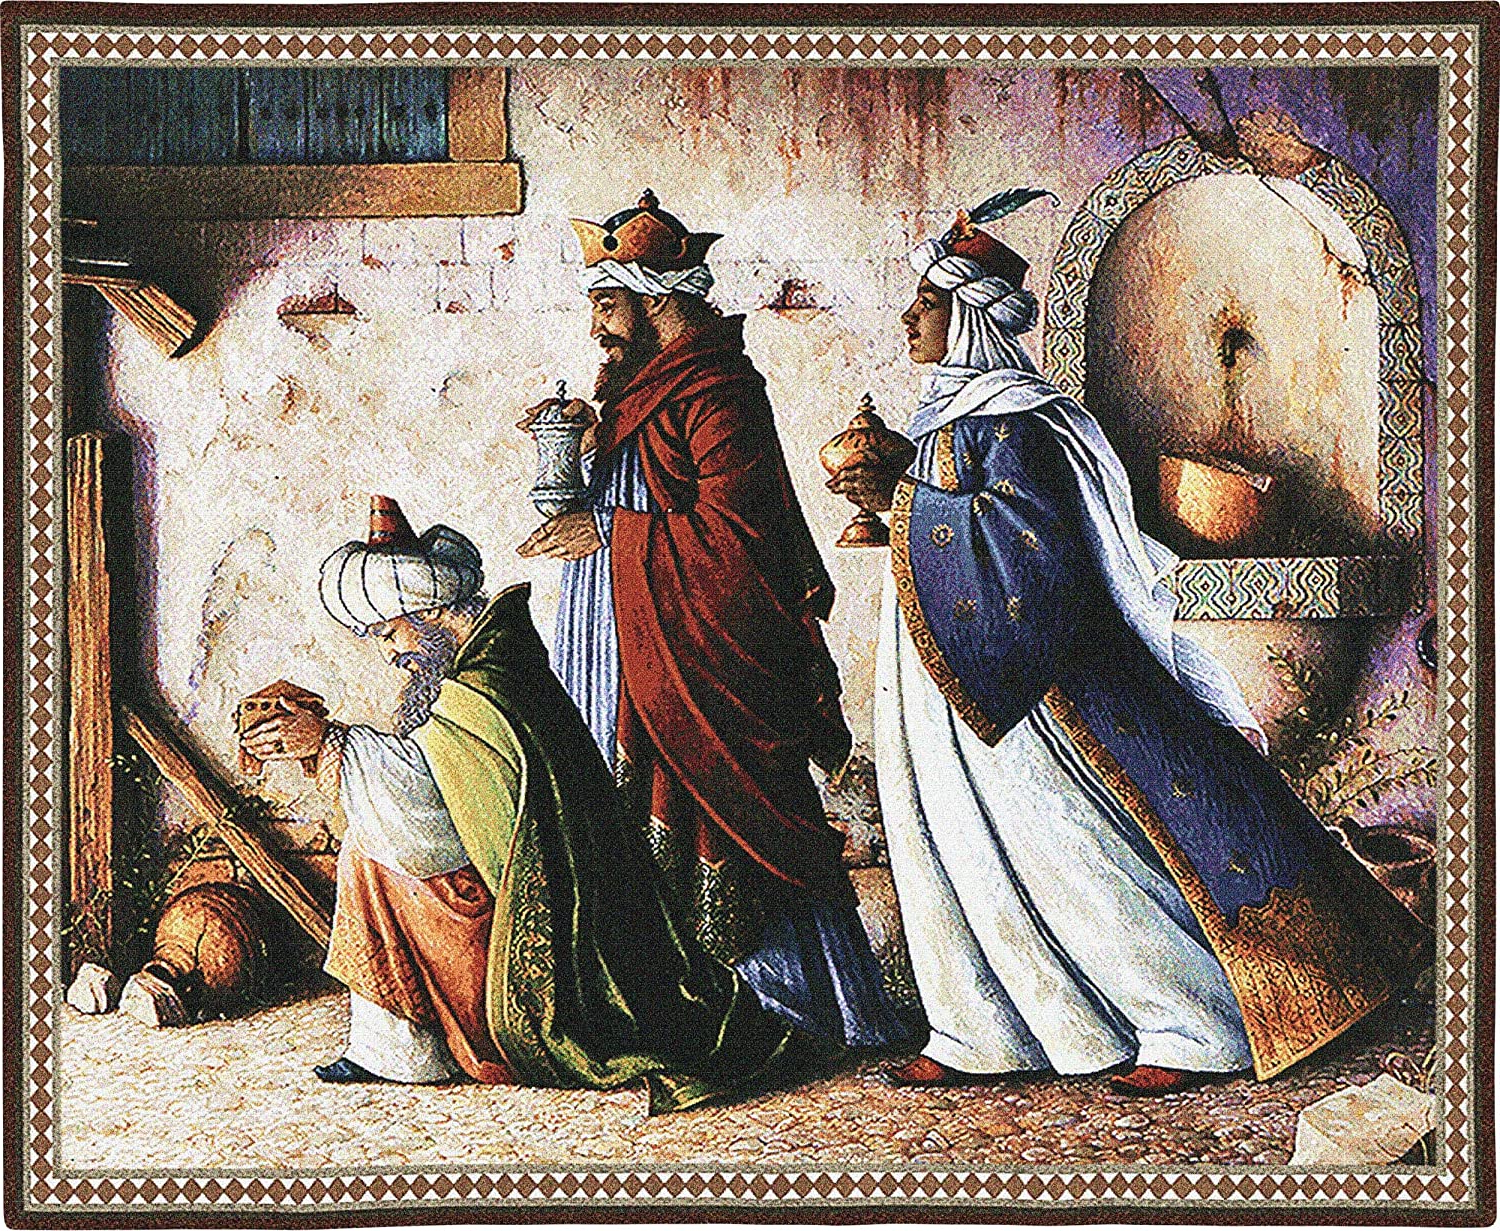 [%three Kingsstewart Sherwood | Woven Tapestry Wall Art Hanging | Christian Nativity Wise Men Scene | 100% Cotton Usa Size 32x26 Pertaining To Best And Newest Blended Fabric Garden Of Gethsemane Tapestries And Wall Hangings|blended Fabric Garden Of Gethsemane Tapestries And Wall Hangings Within Most Recent Three Kingsstewart Sherwood | Woven Tapestry Wall Art Hanging | Christian Nativity Wise Men Scene | 100% Cotton Usa Size 32x26|fashionable Blended Fabric Garden Of Gethsemane Tapestries And Wall Hangings For Three Kingsstewart Sherwood | Woven Tapestry Wall Art Hanging | Christian Nativity Wise Men Scene | 100% Cotton Usa Size 32x26|latest Three Kingsstewart Sherwood | Woven Tapestry Wall Art Hanging | Christian Nativity Wise Men Scene | 100% Cotton Usa Size 32x26 Intended For Blended Fabric Garden Of Gethsemane Tapestries And Wall Hangings%] (View 5 of 20)